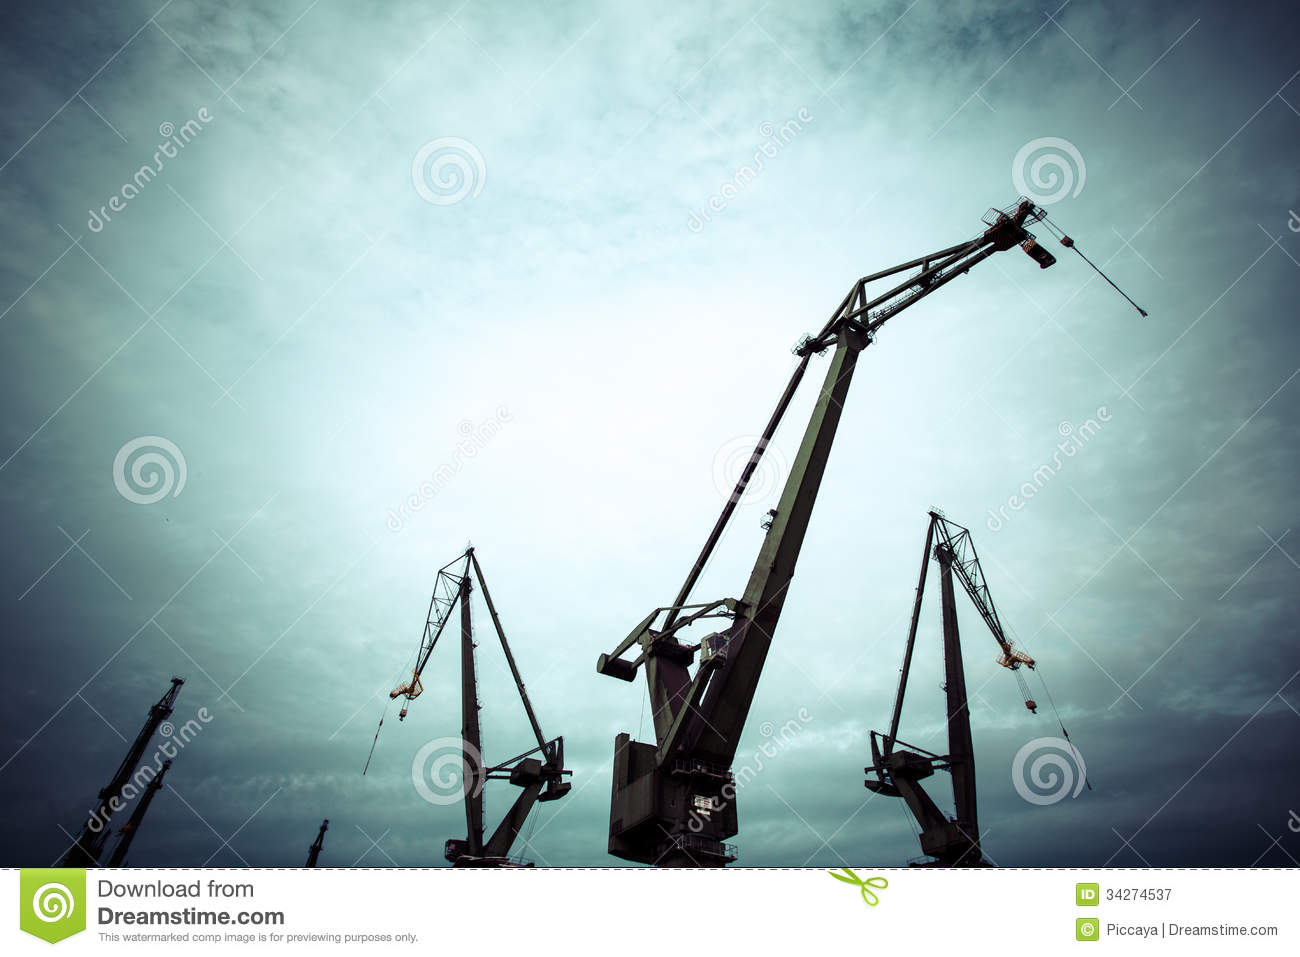 Silhouettes Of Industrial Cranes In Gdansk Shipyard Royalty Free.